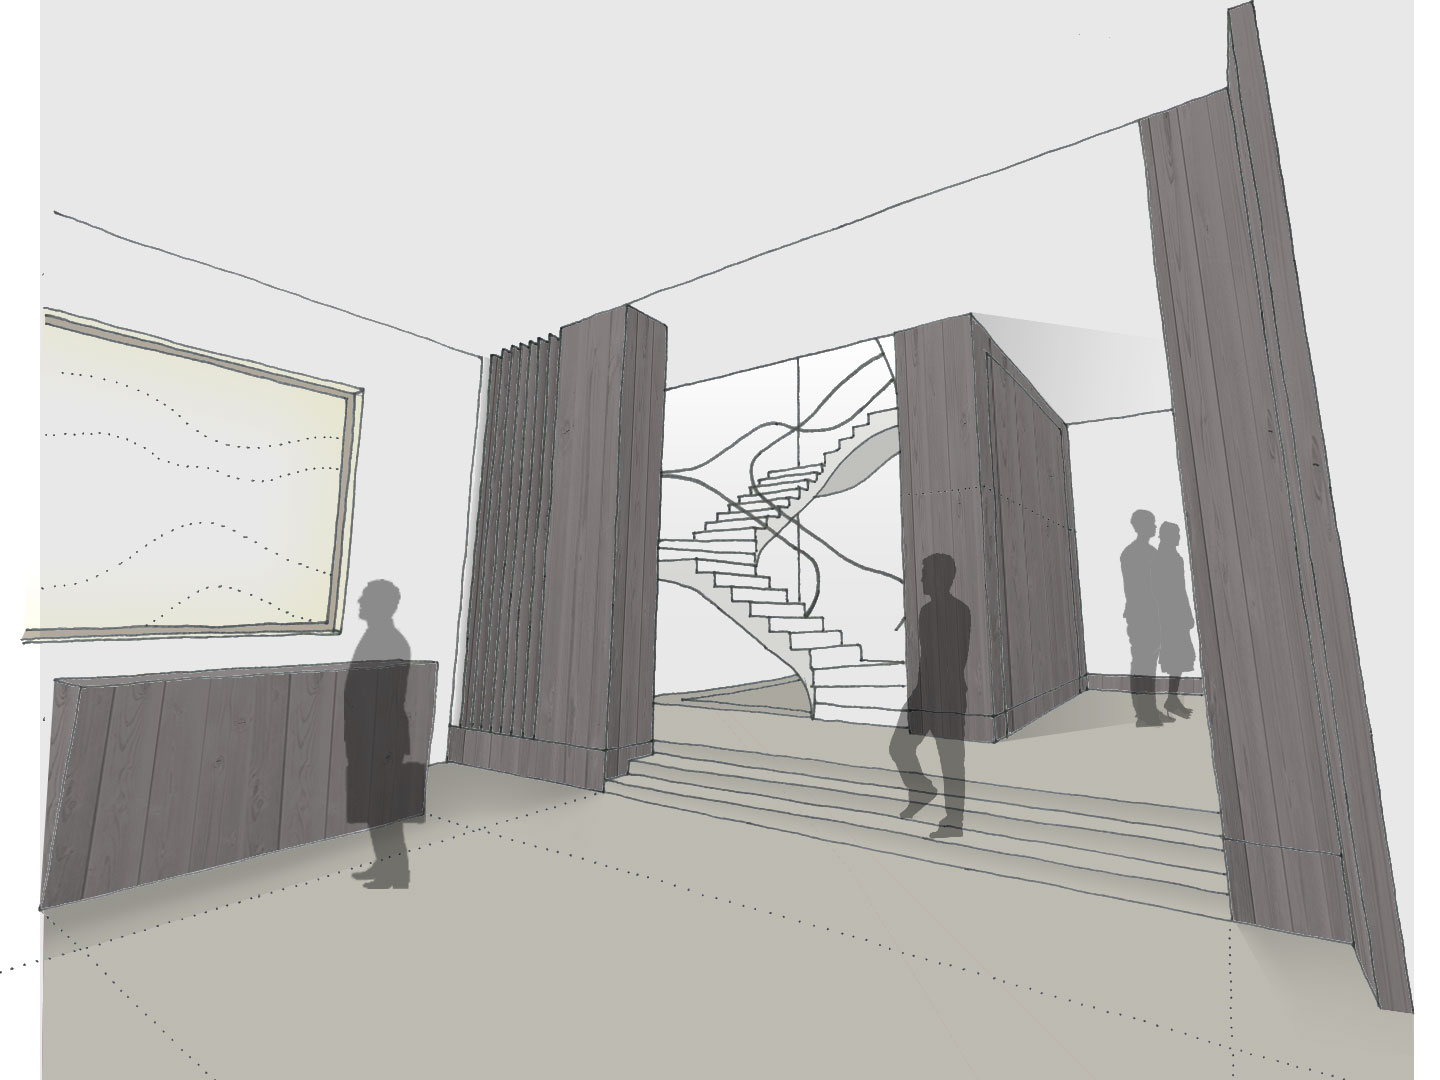 22_grosvenor_square-residential_entrance_interior_sketch